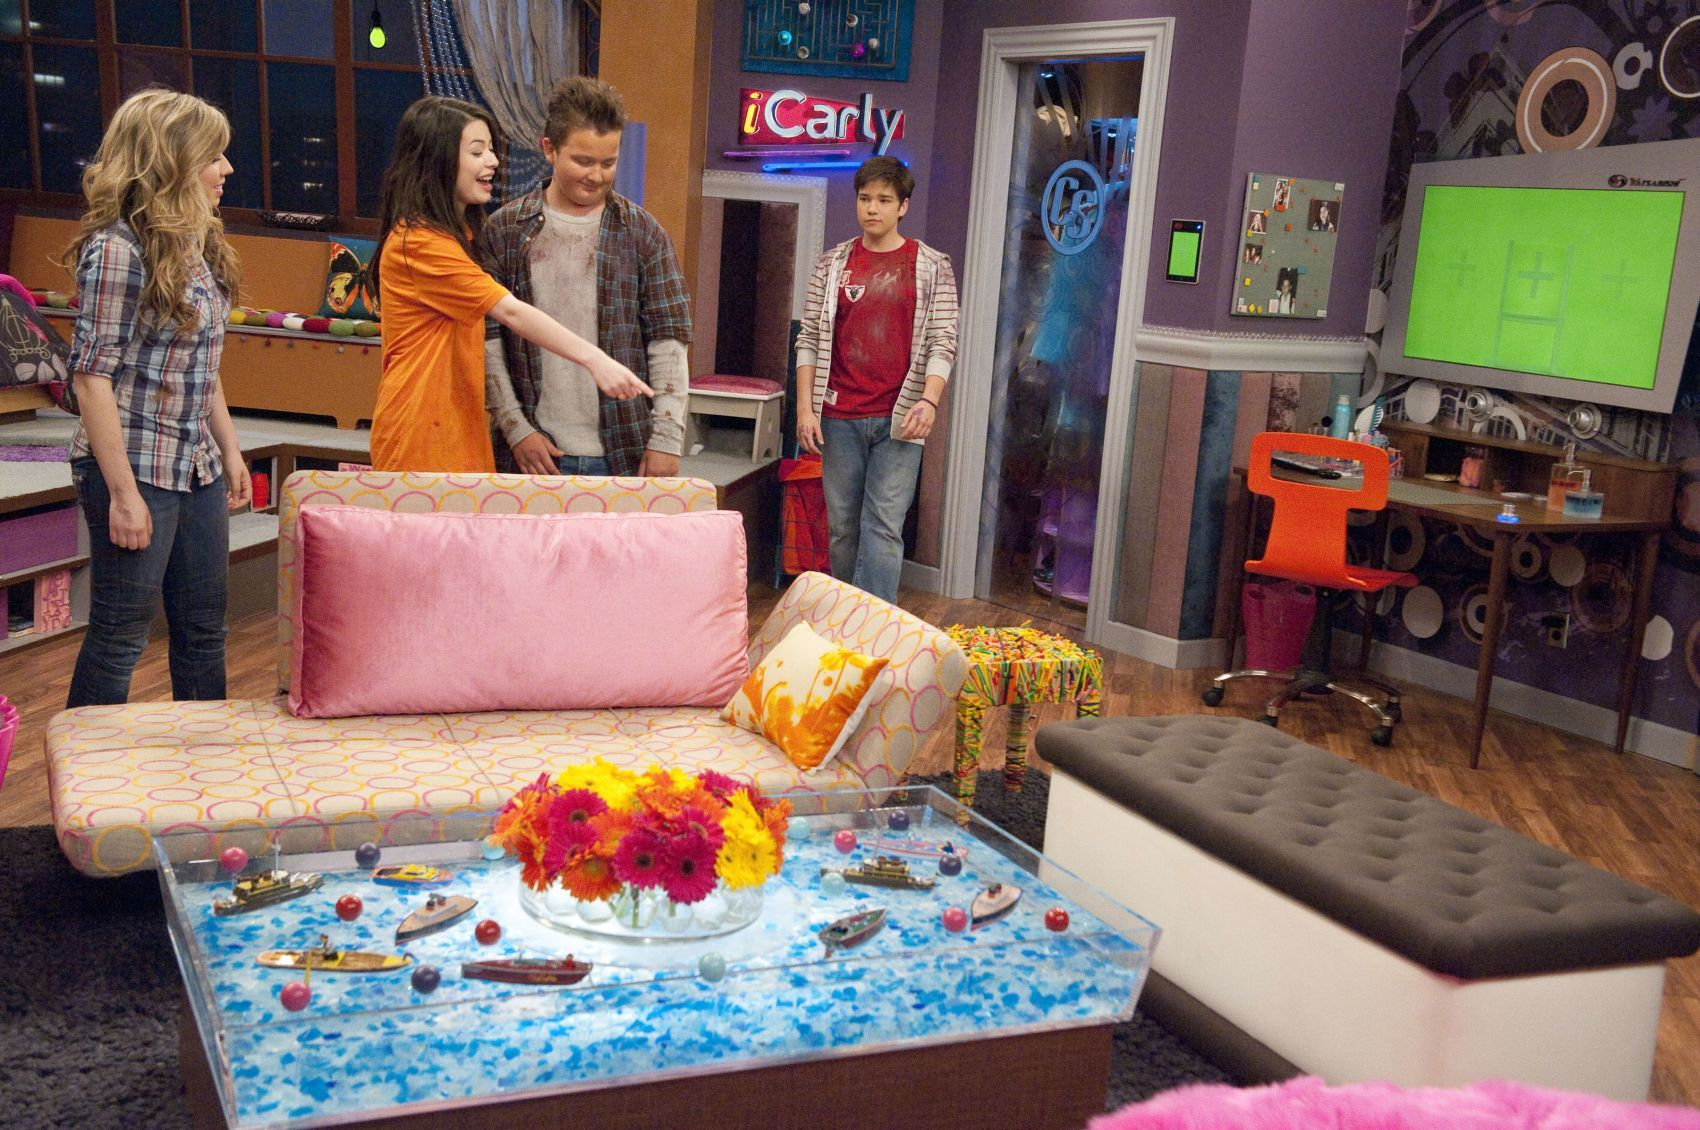 icarly room - Google Search | I Carly room | Pinterest